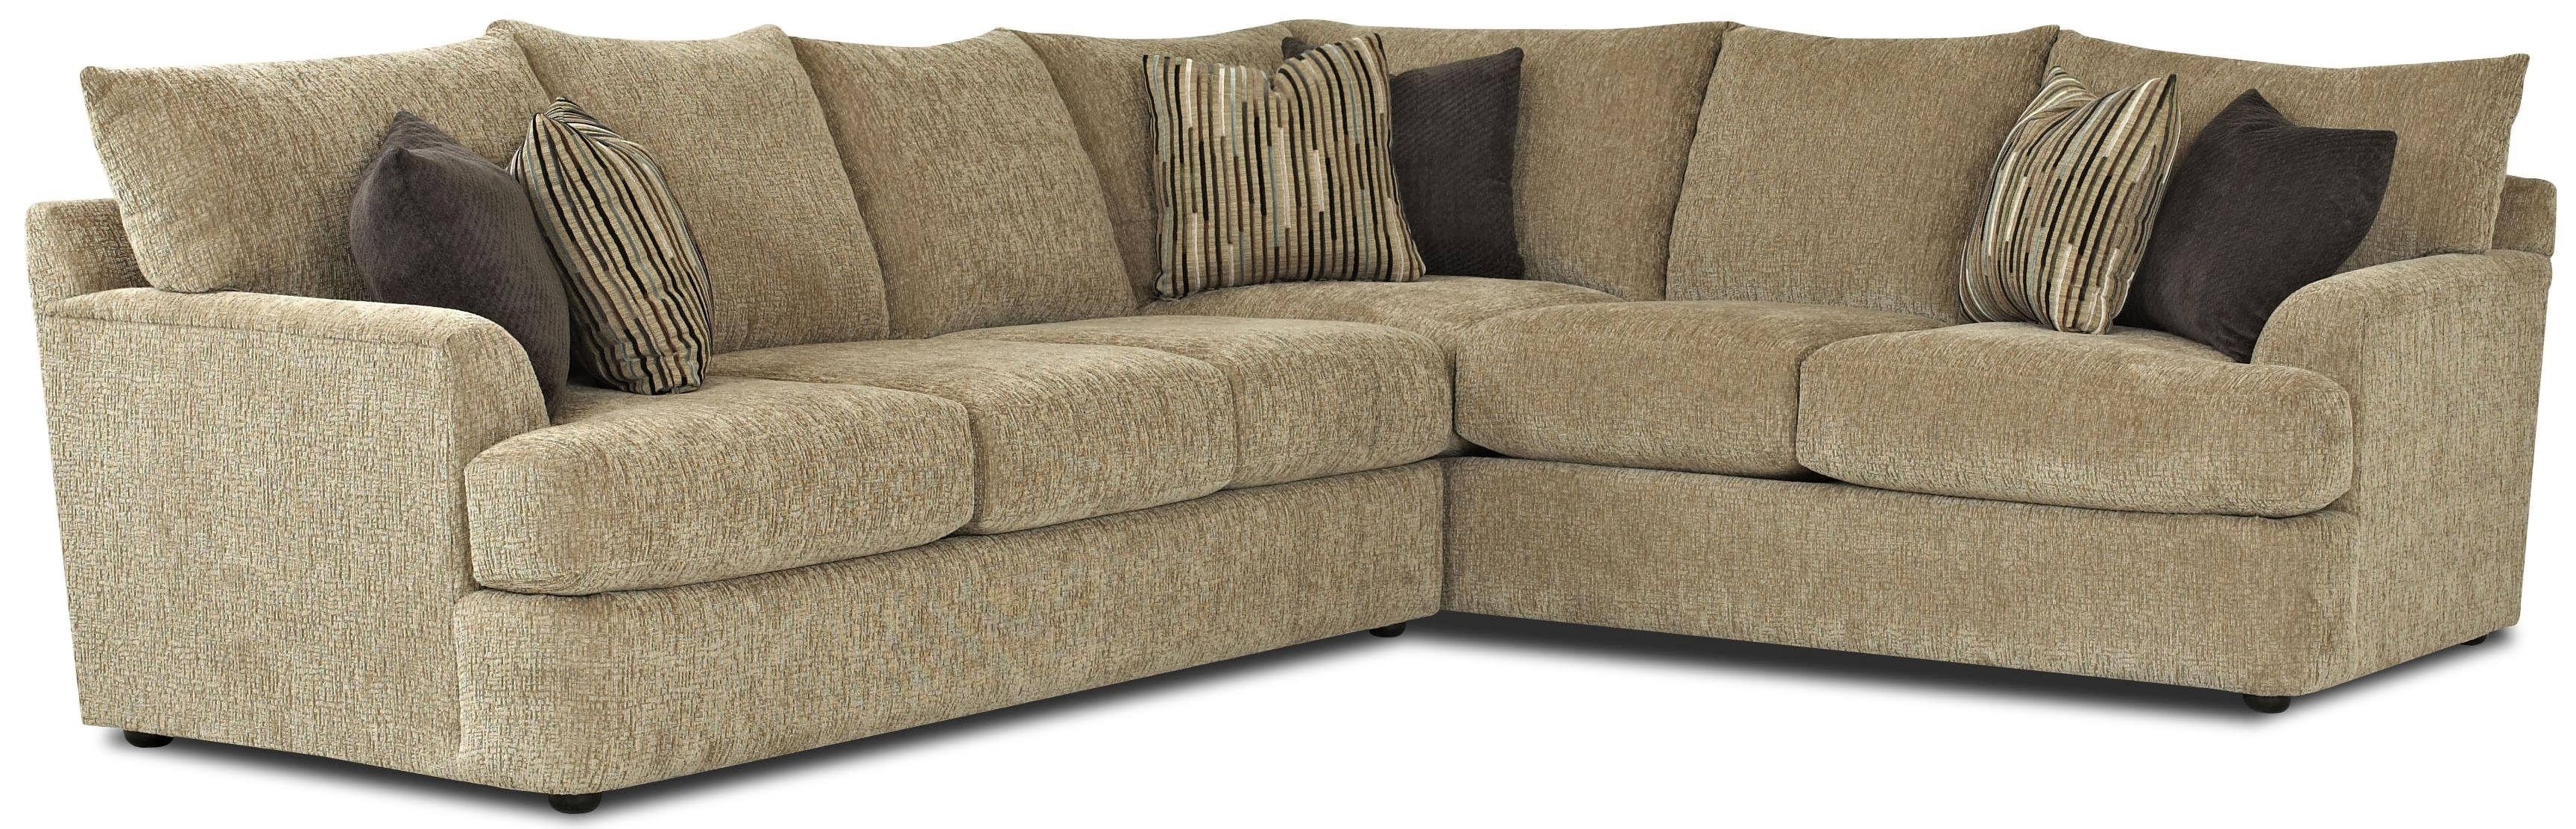 Current Sofa : Deep Couches Sectional Sofas With Recliners Fold Out Couch Intended For L Shaped Sectionals With Chaise (View 4 of 15)